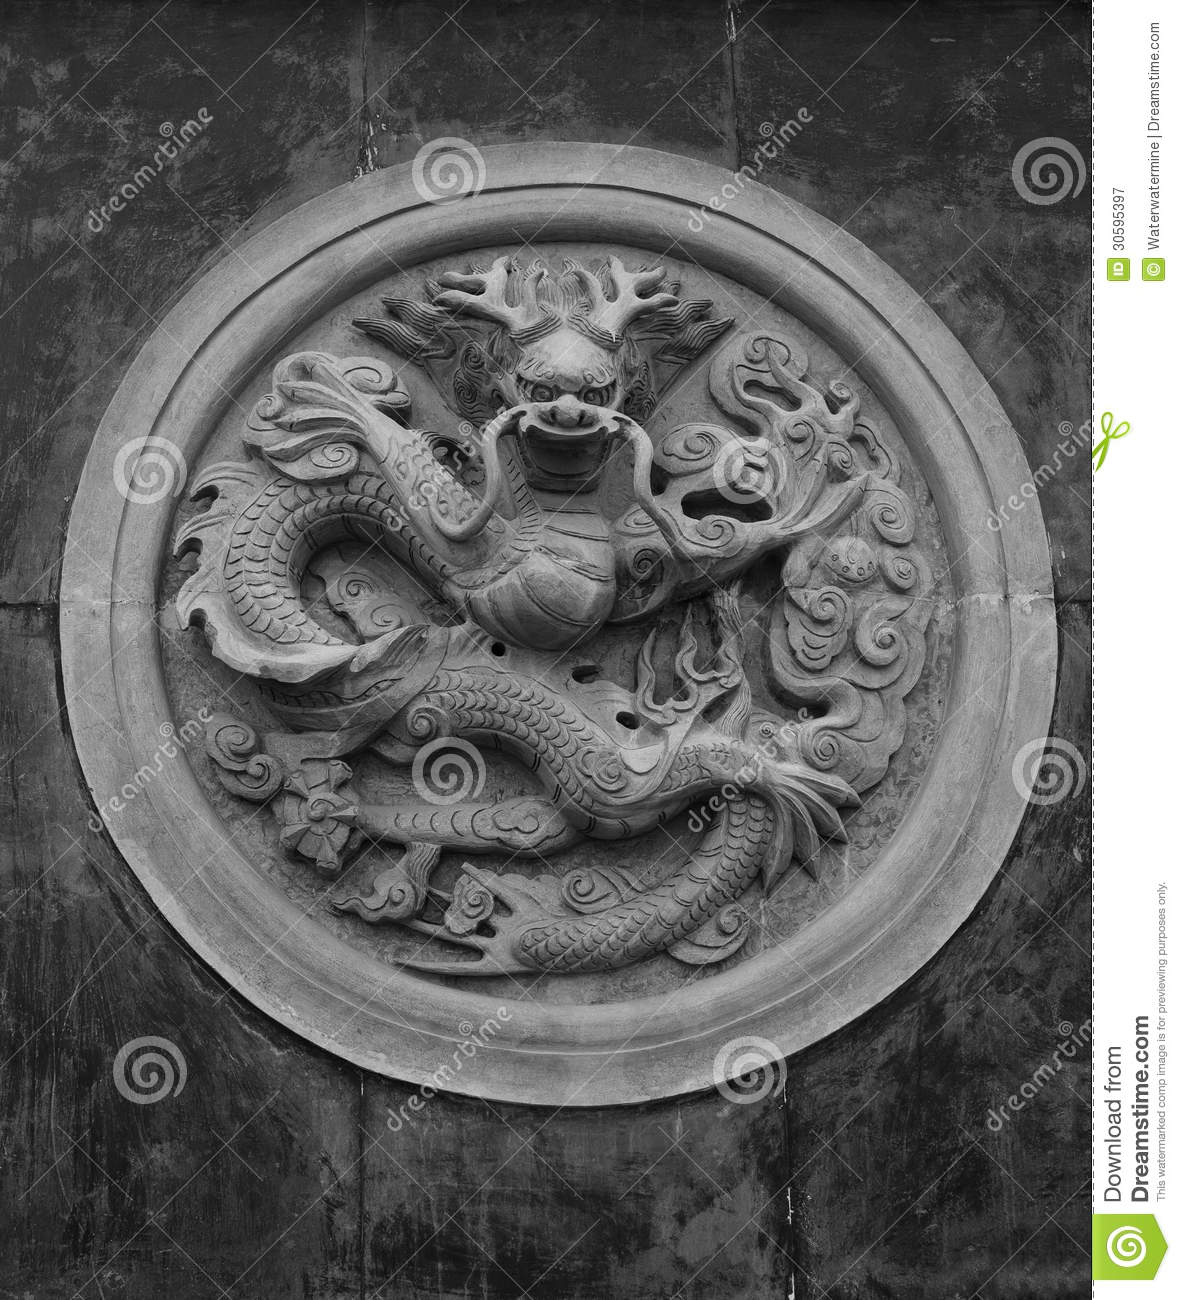 Pattern of coiled dragon royalty free stock photography